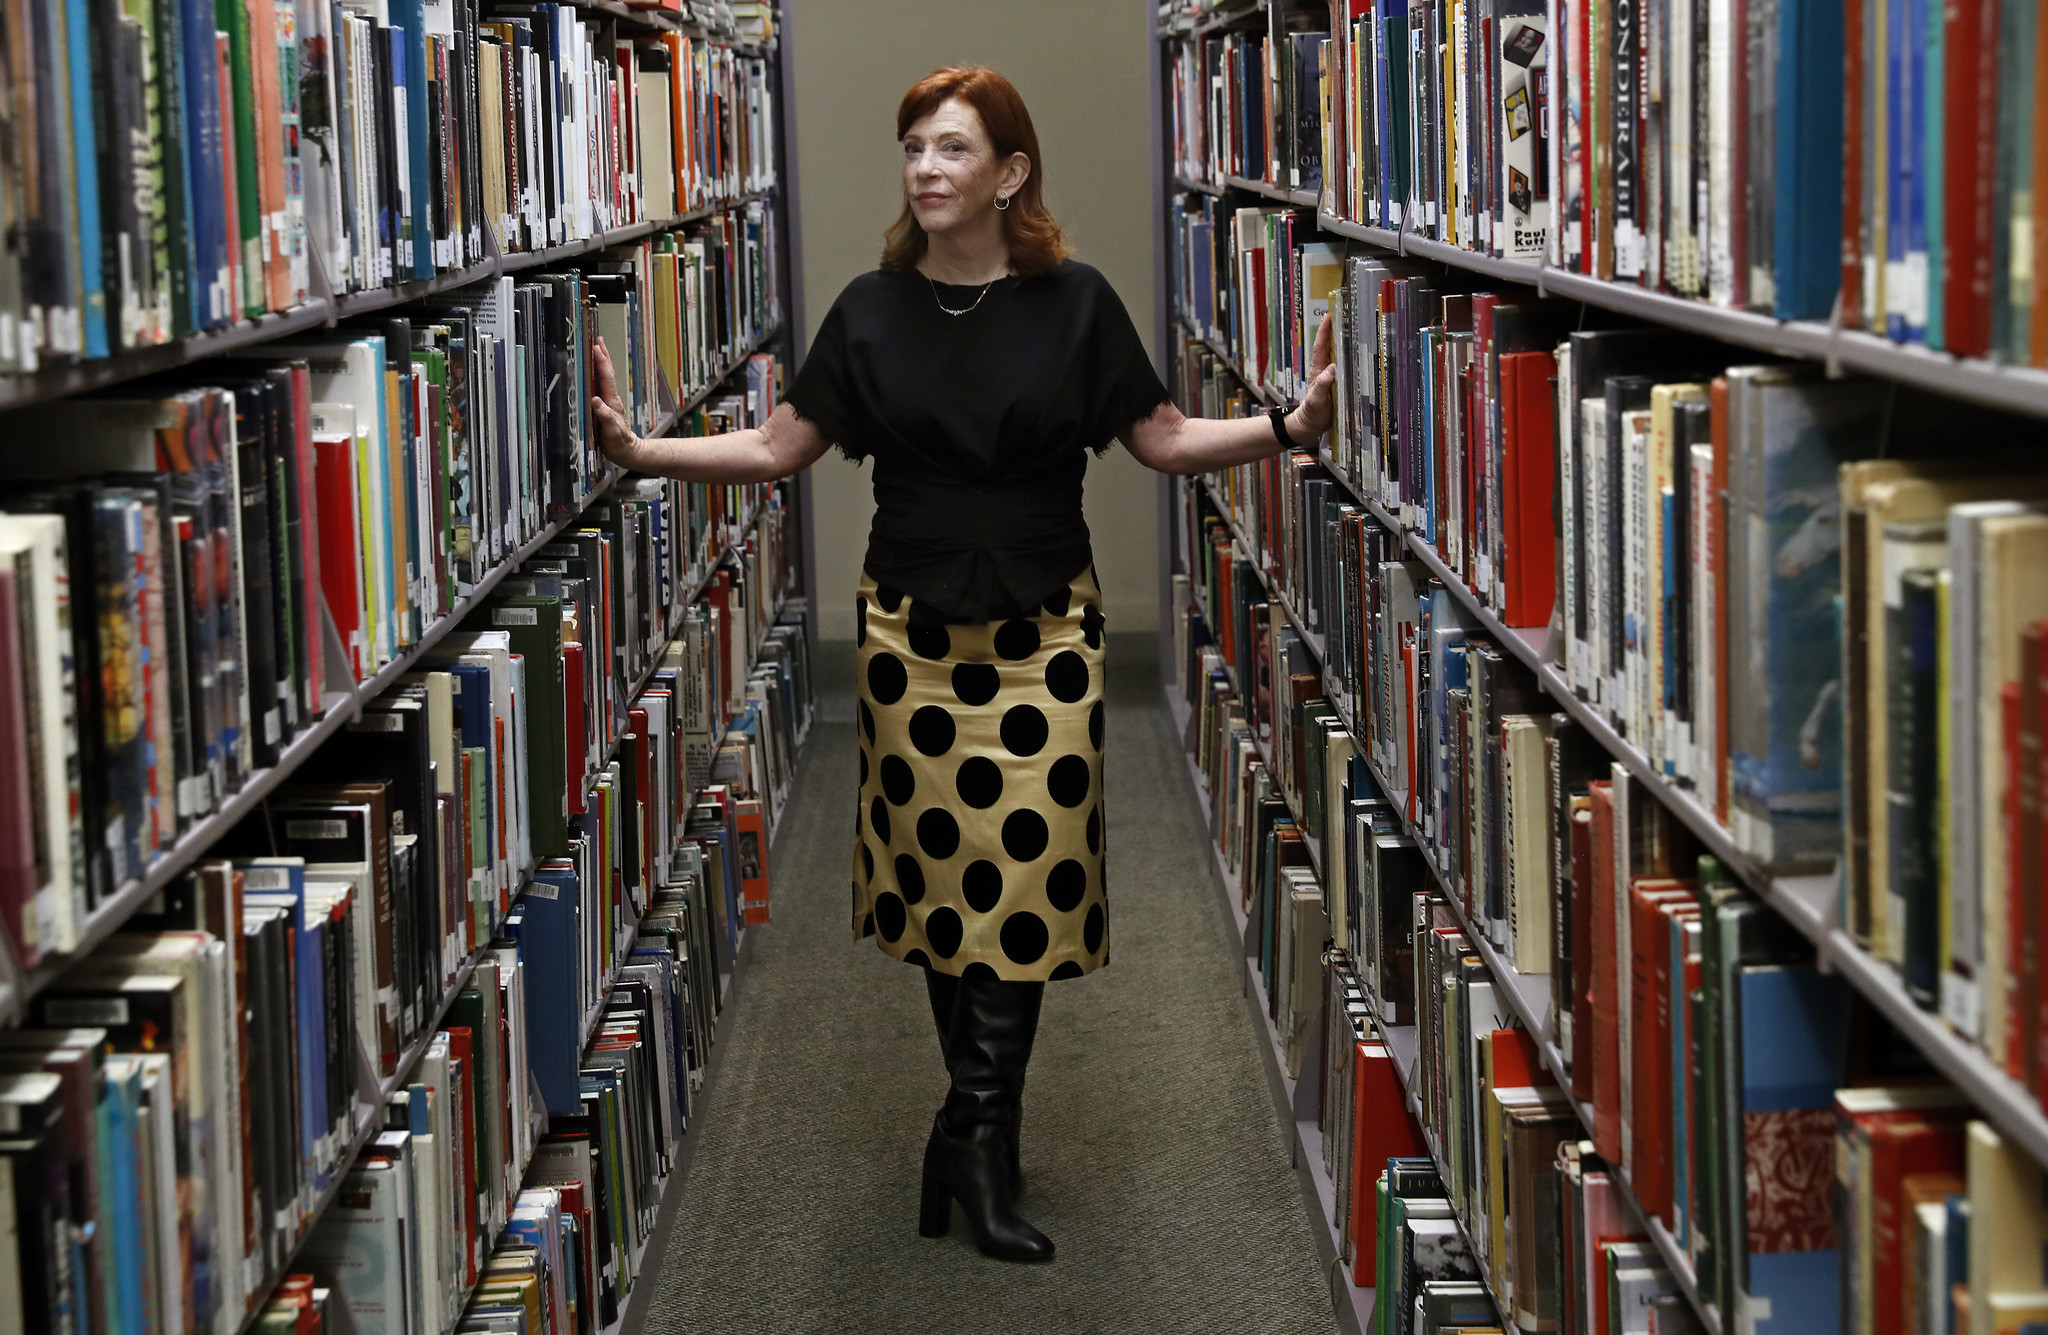 Susan Orlean at L.A.'s Central Library.